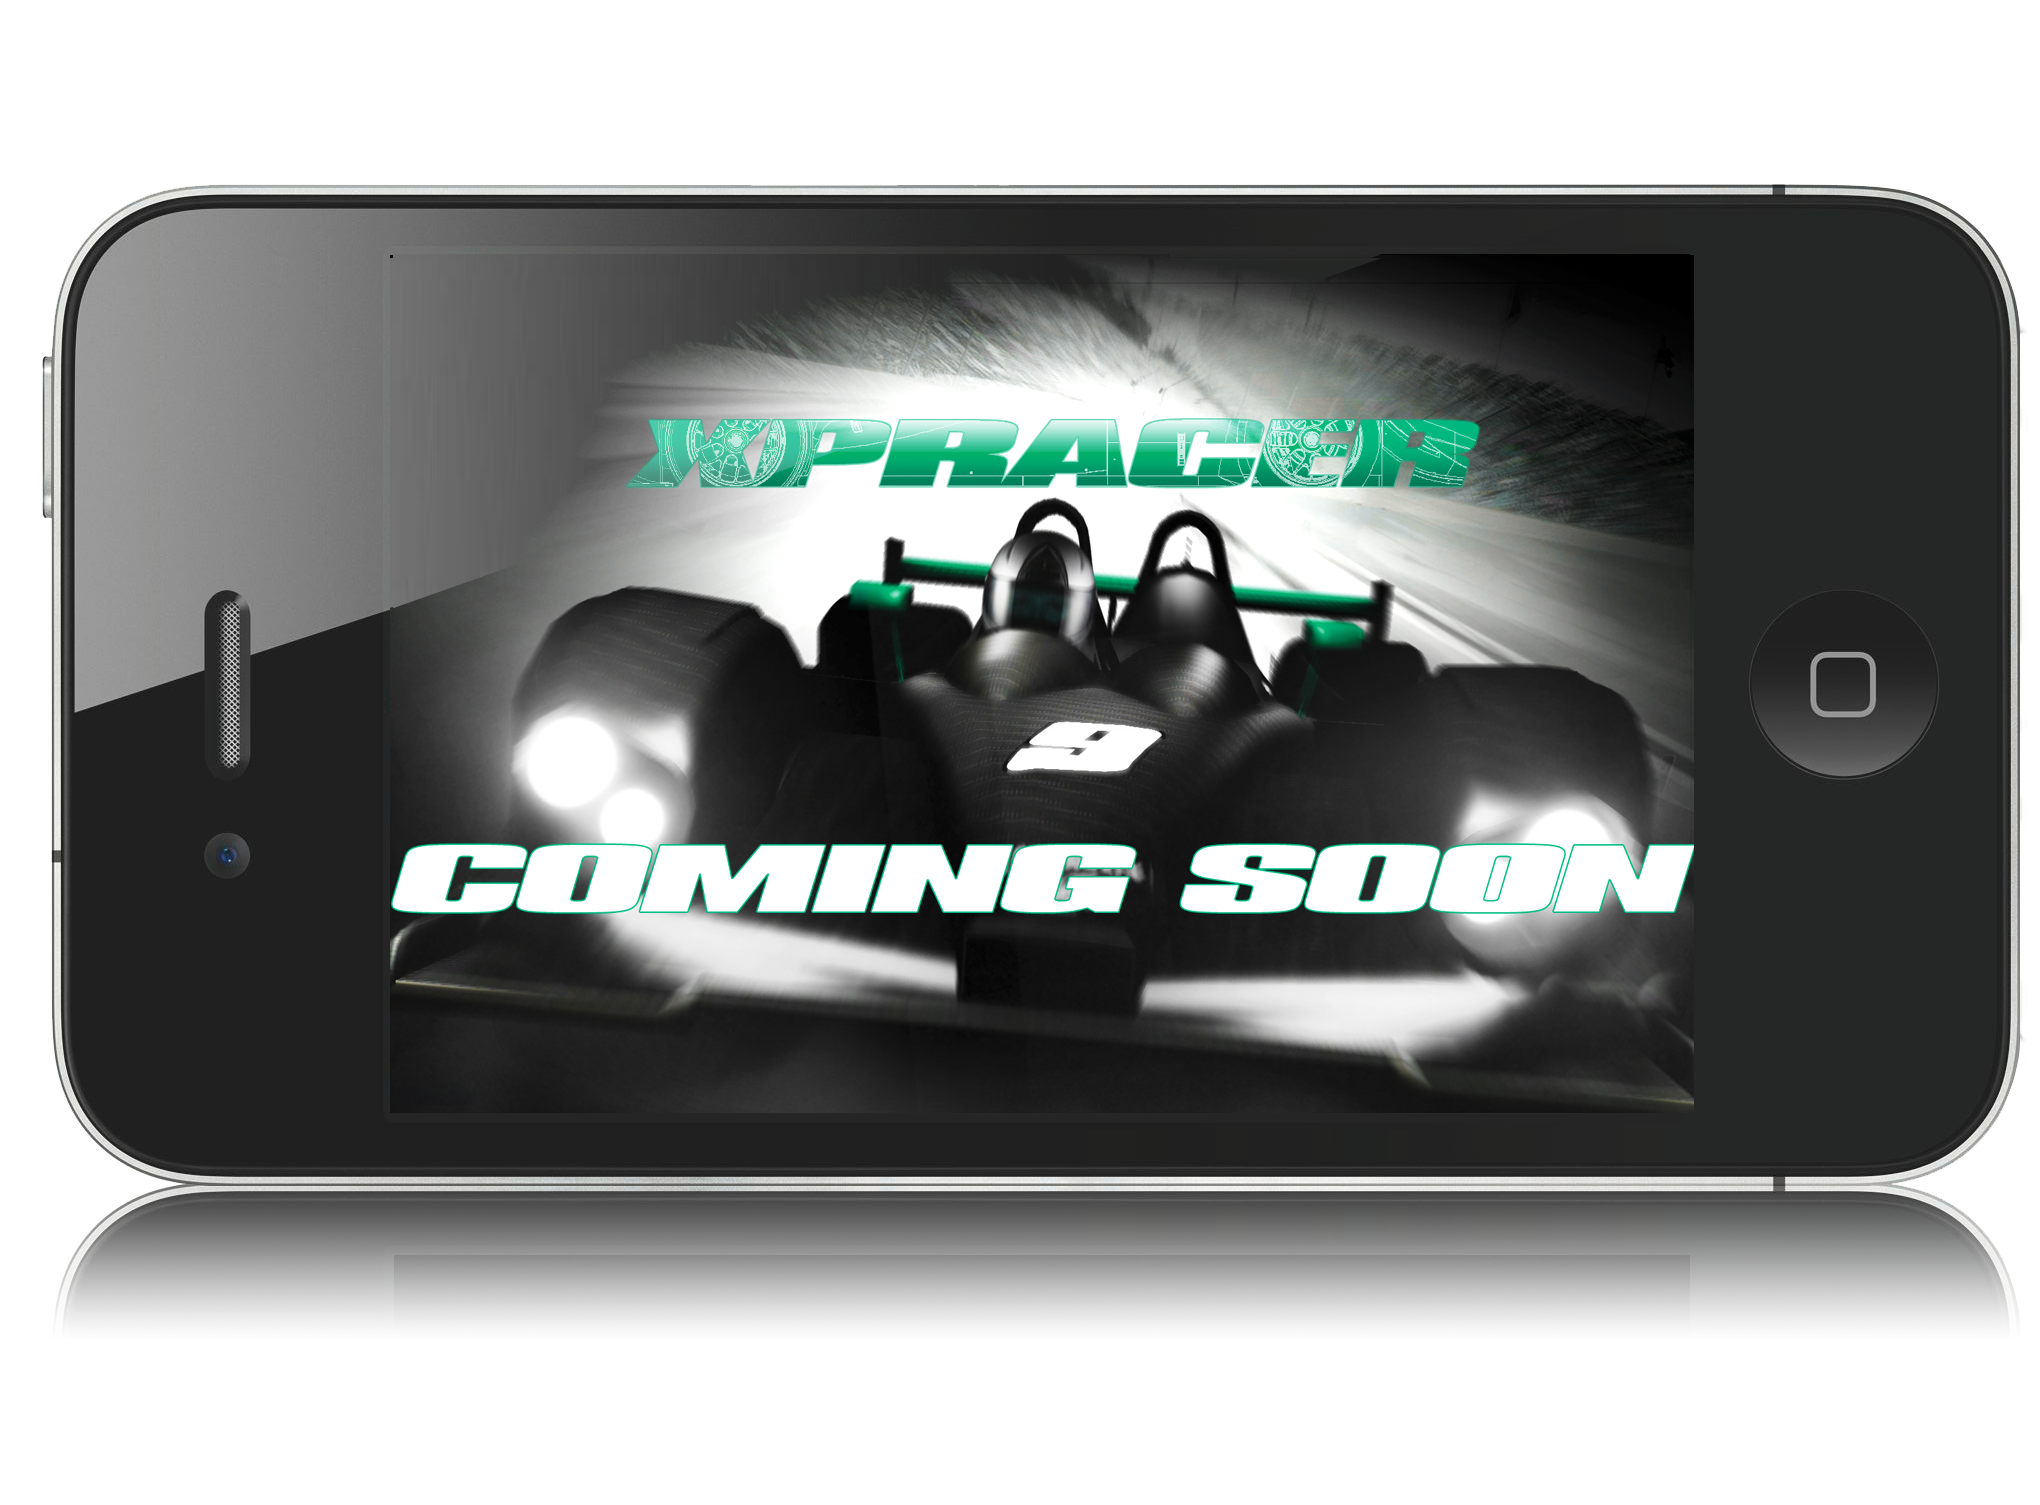 XP RACER – COMING 2013